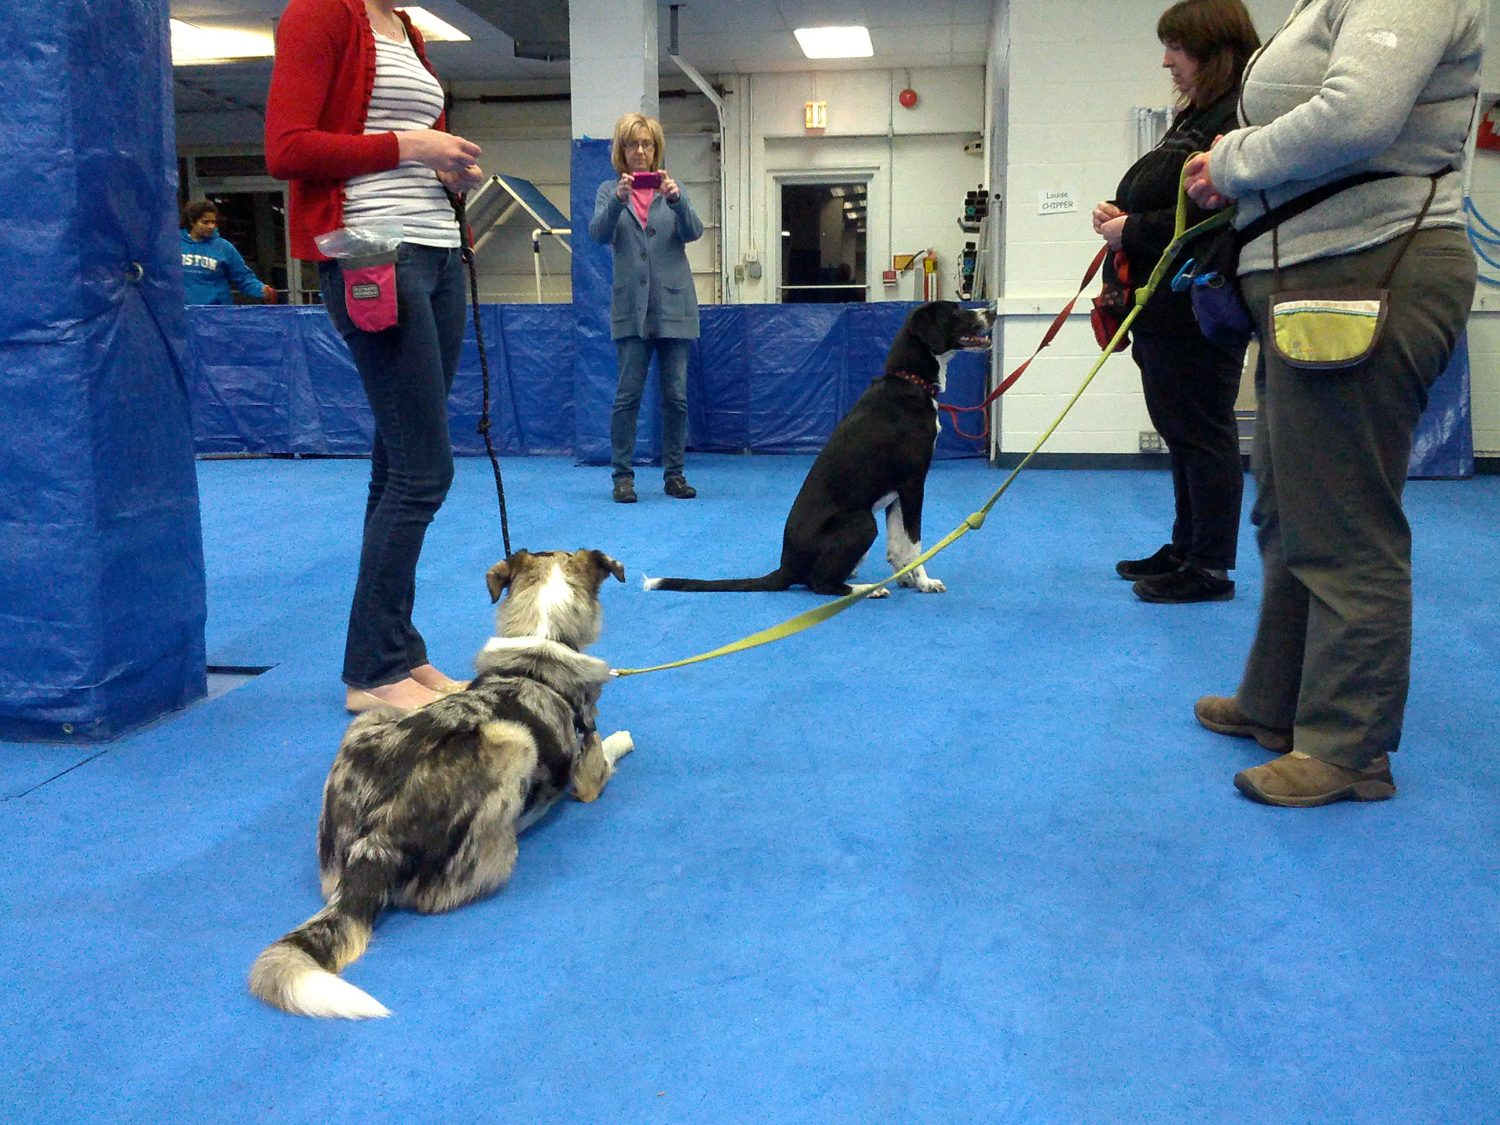 Help! My Dog Barks & Lunges At Other Dogs! — Your Dog's Friend